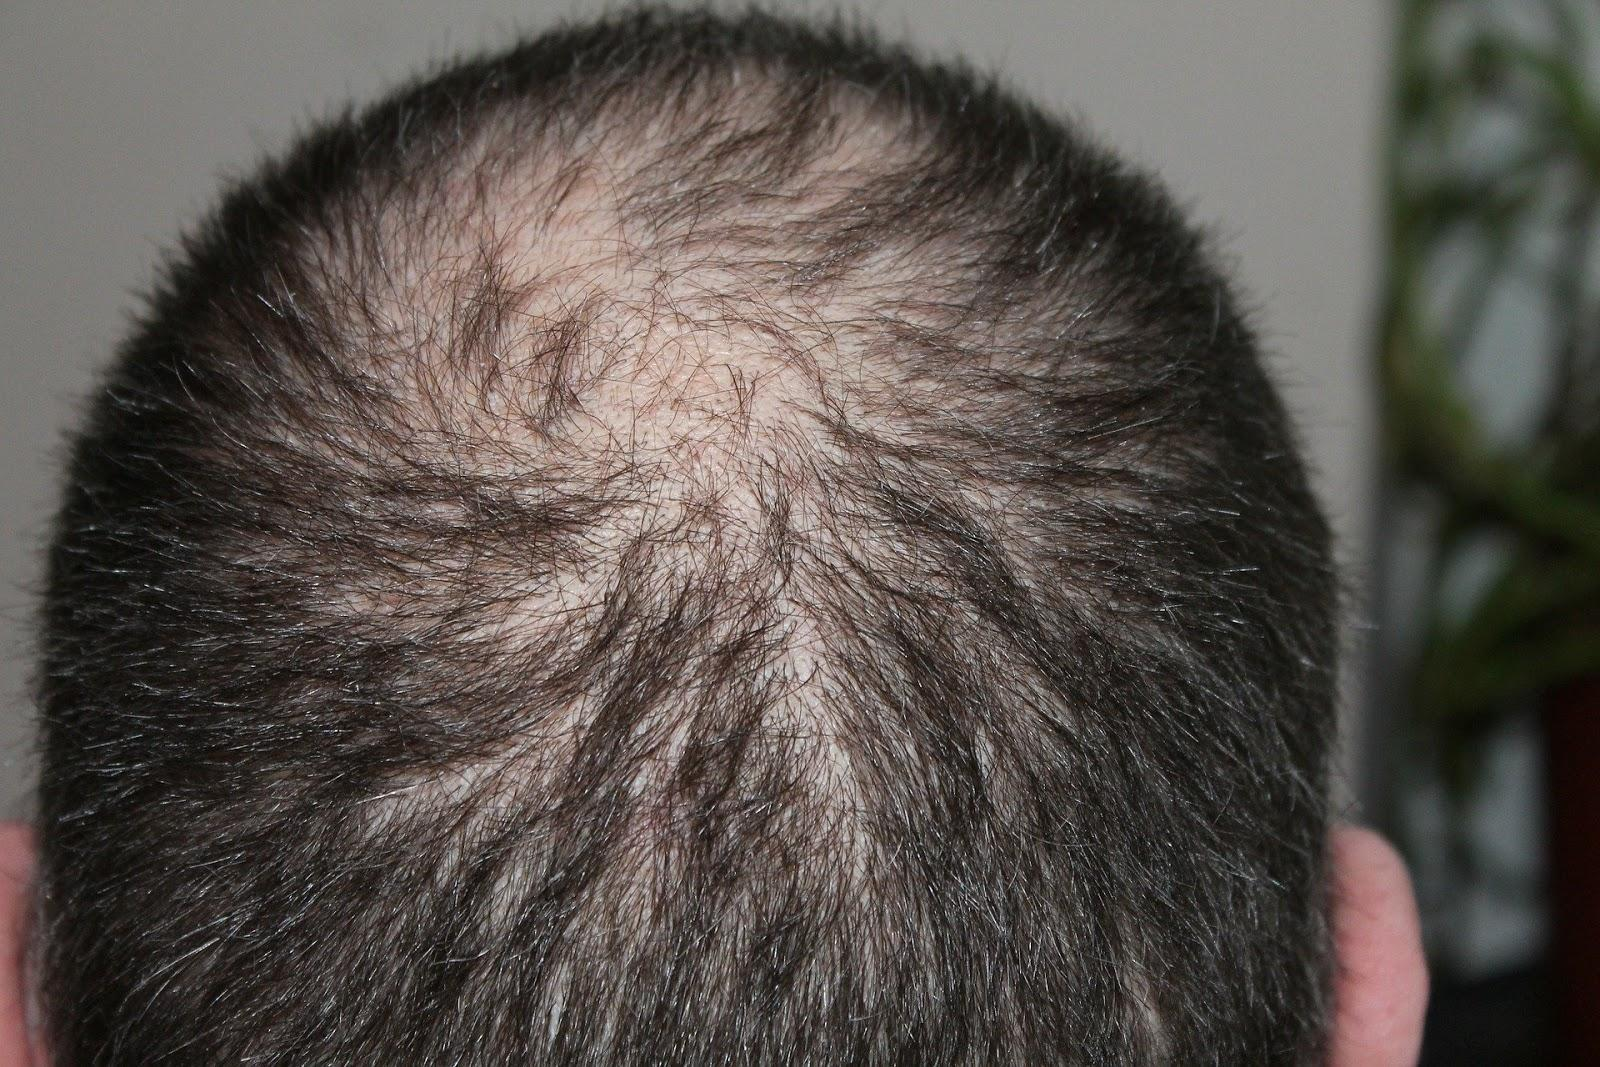 Hair Loss Management Tips From the Experts 2